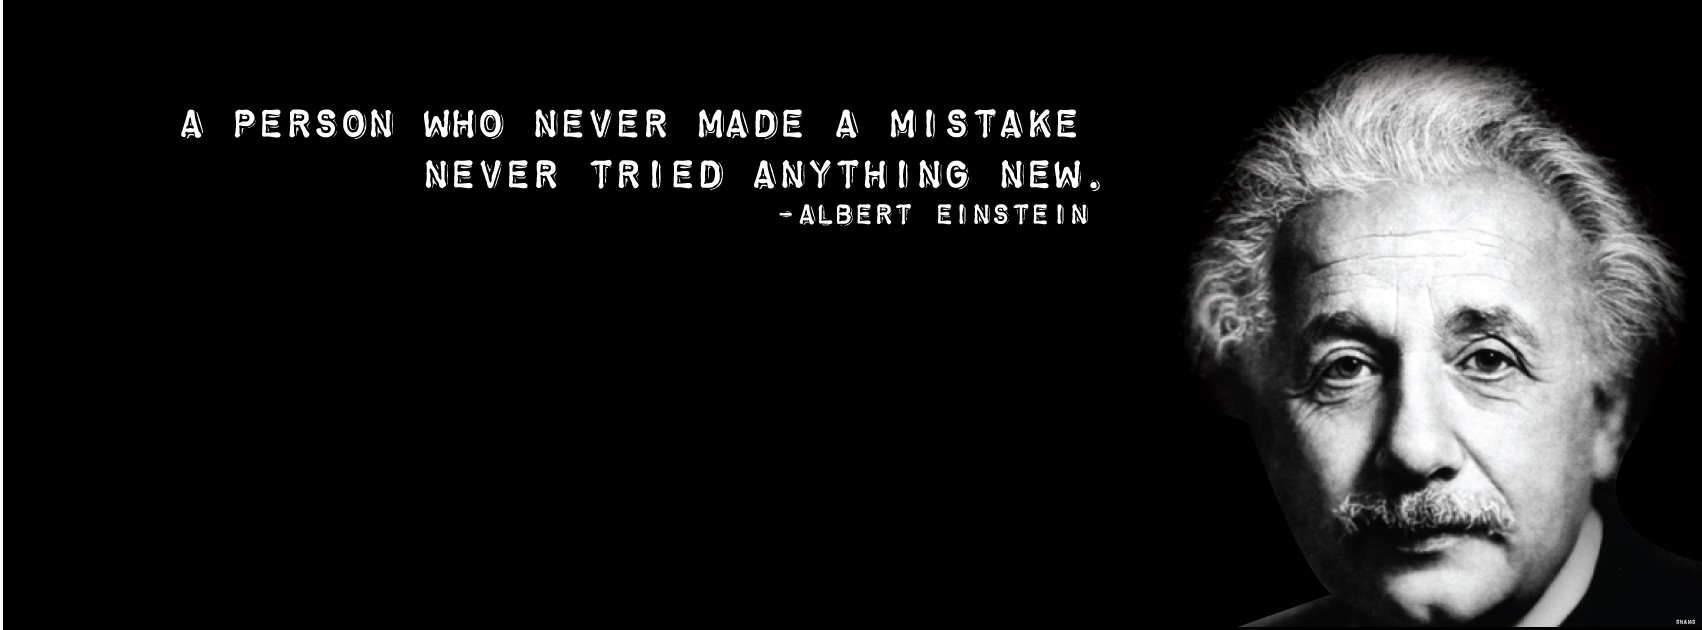 Albert Einstein QuoteEinstein Quotes